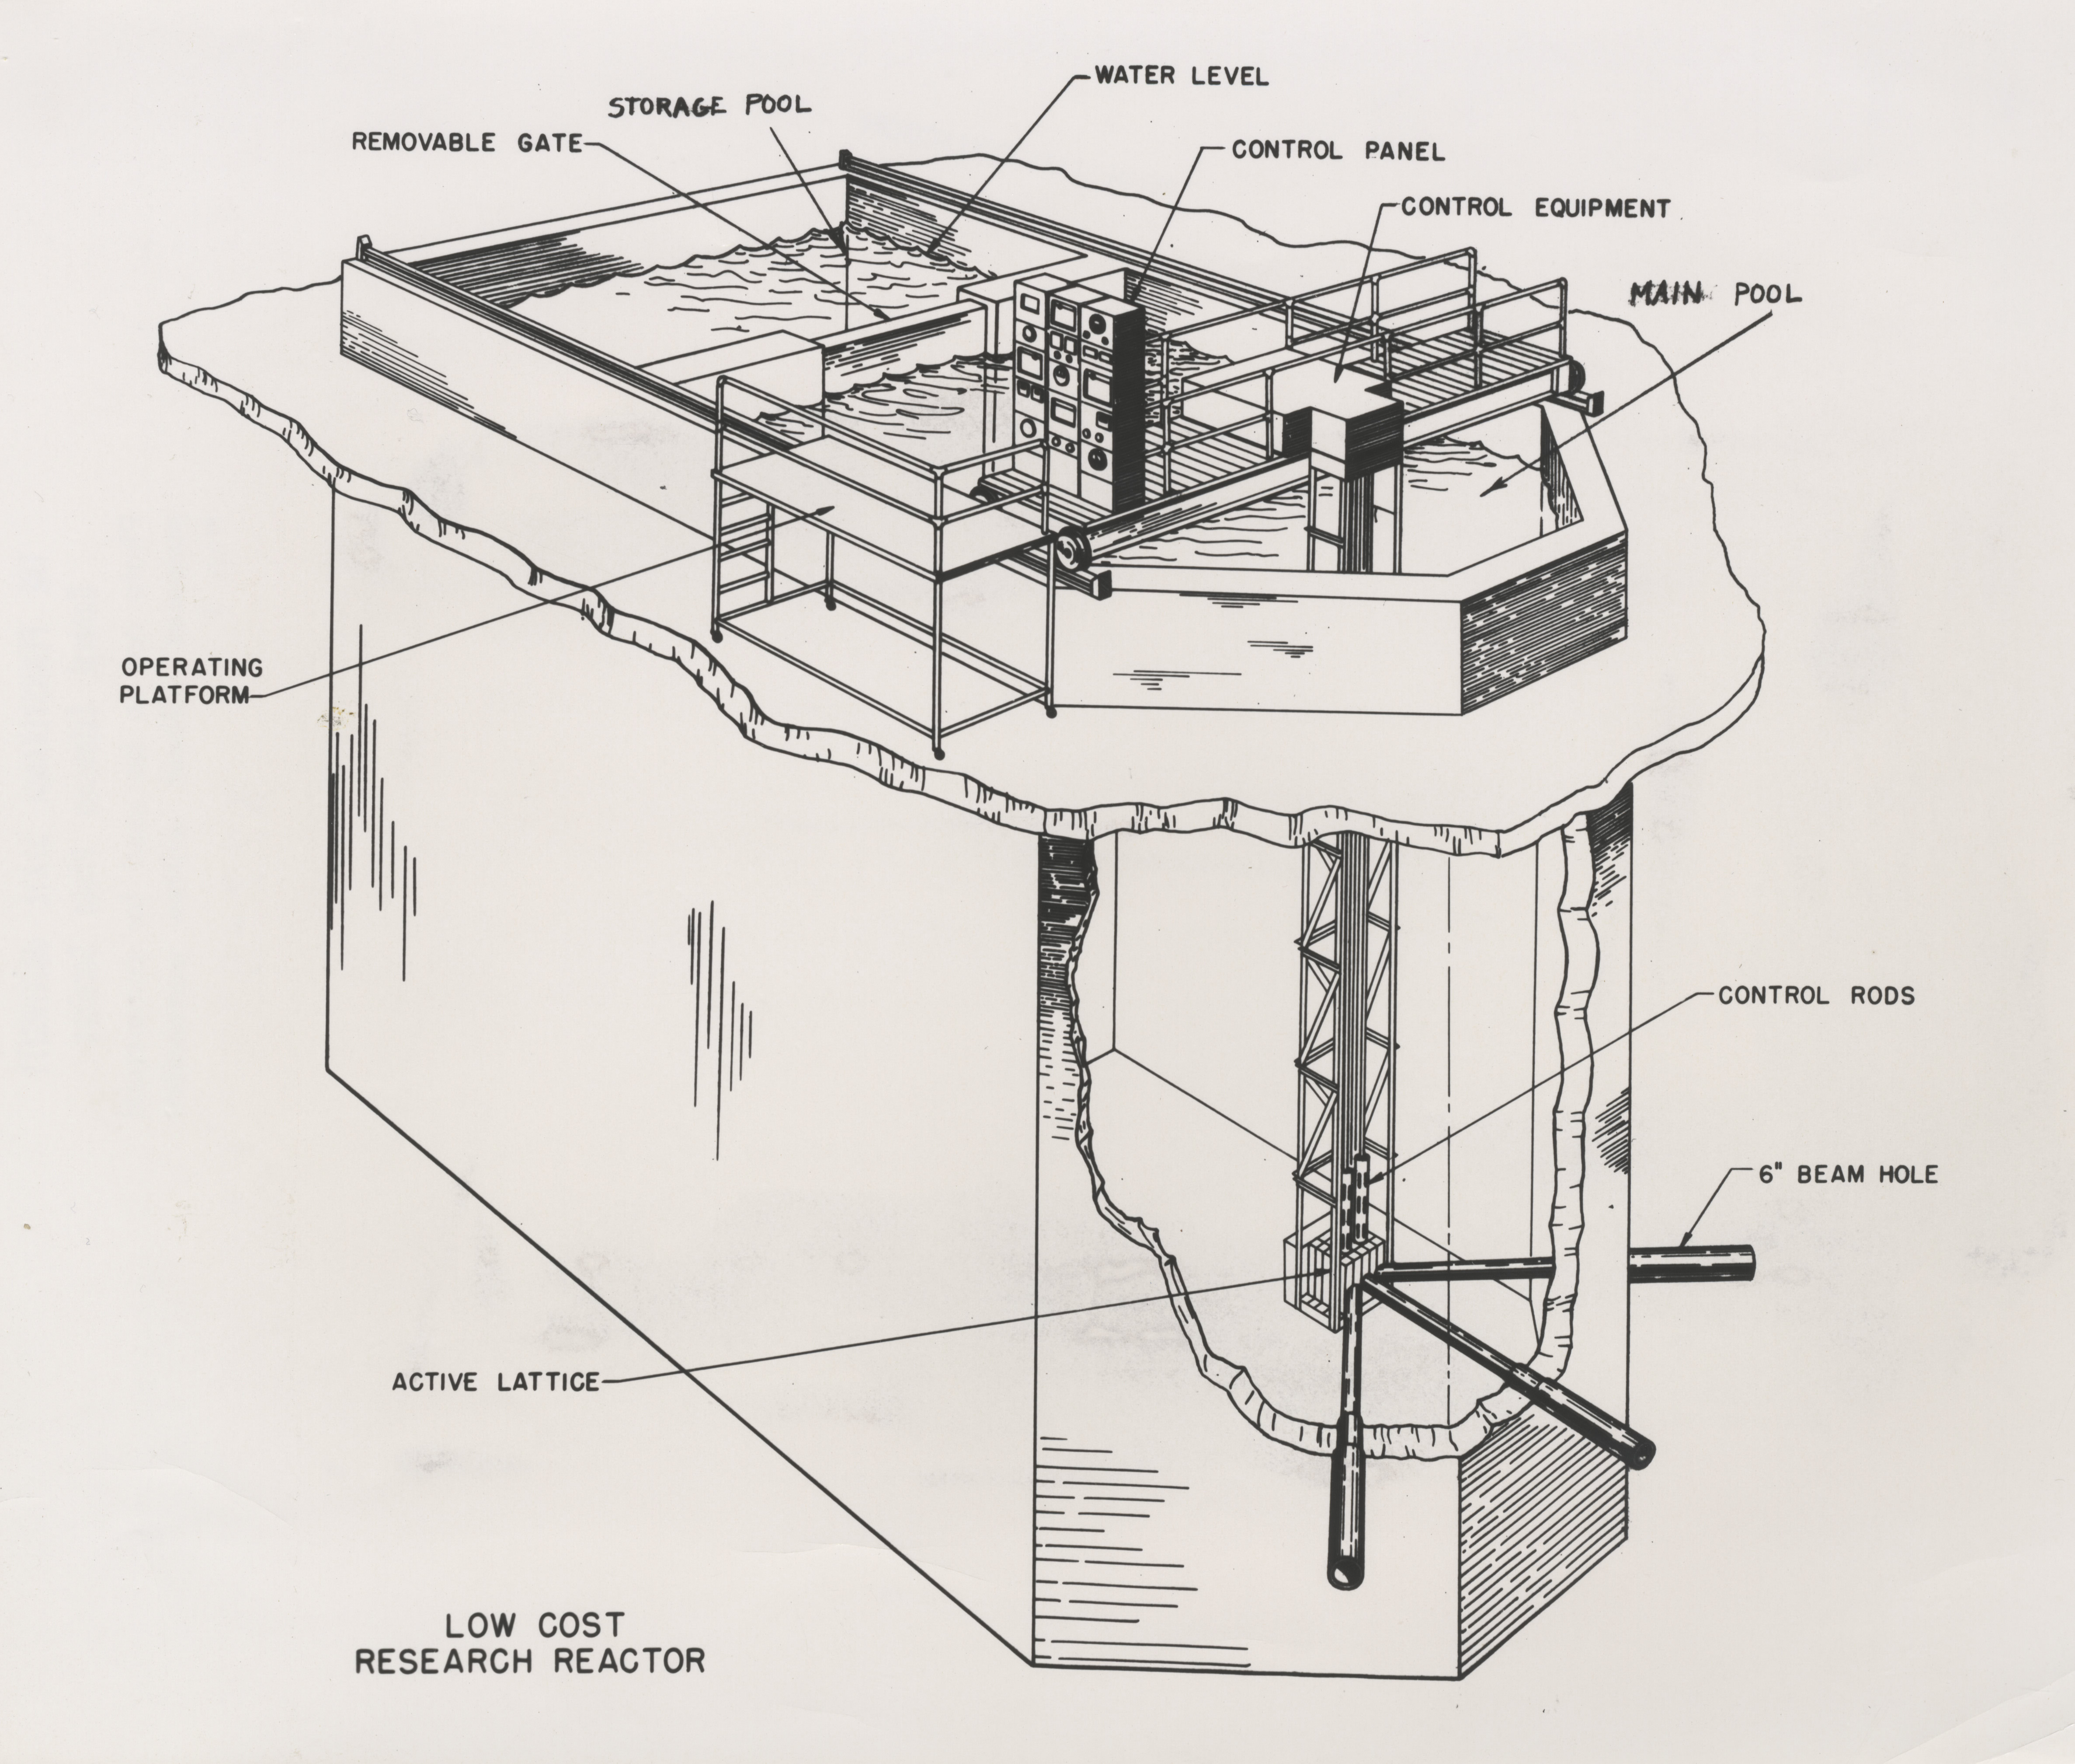 A schematic of the nuclear plant